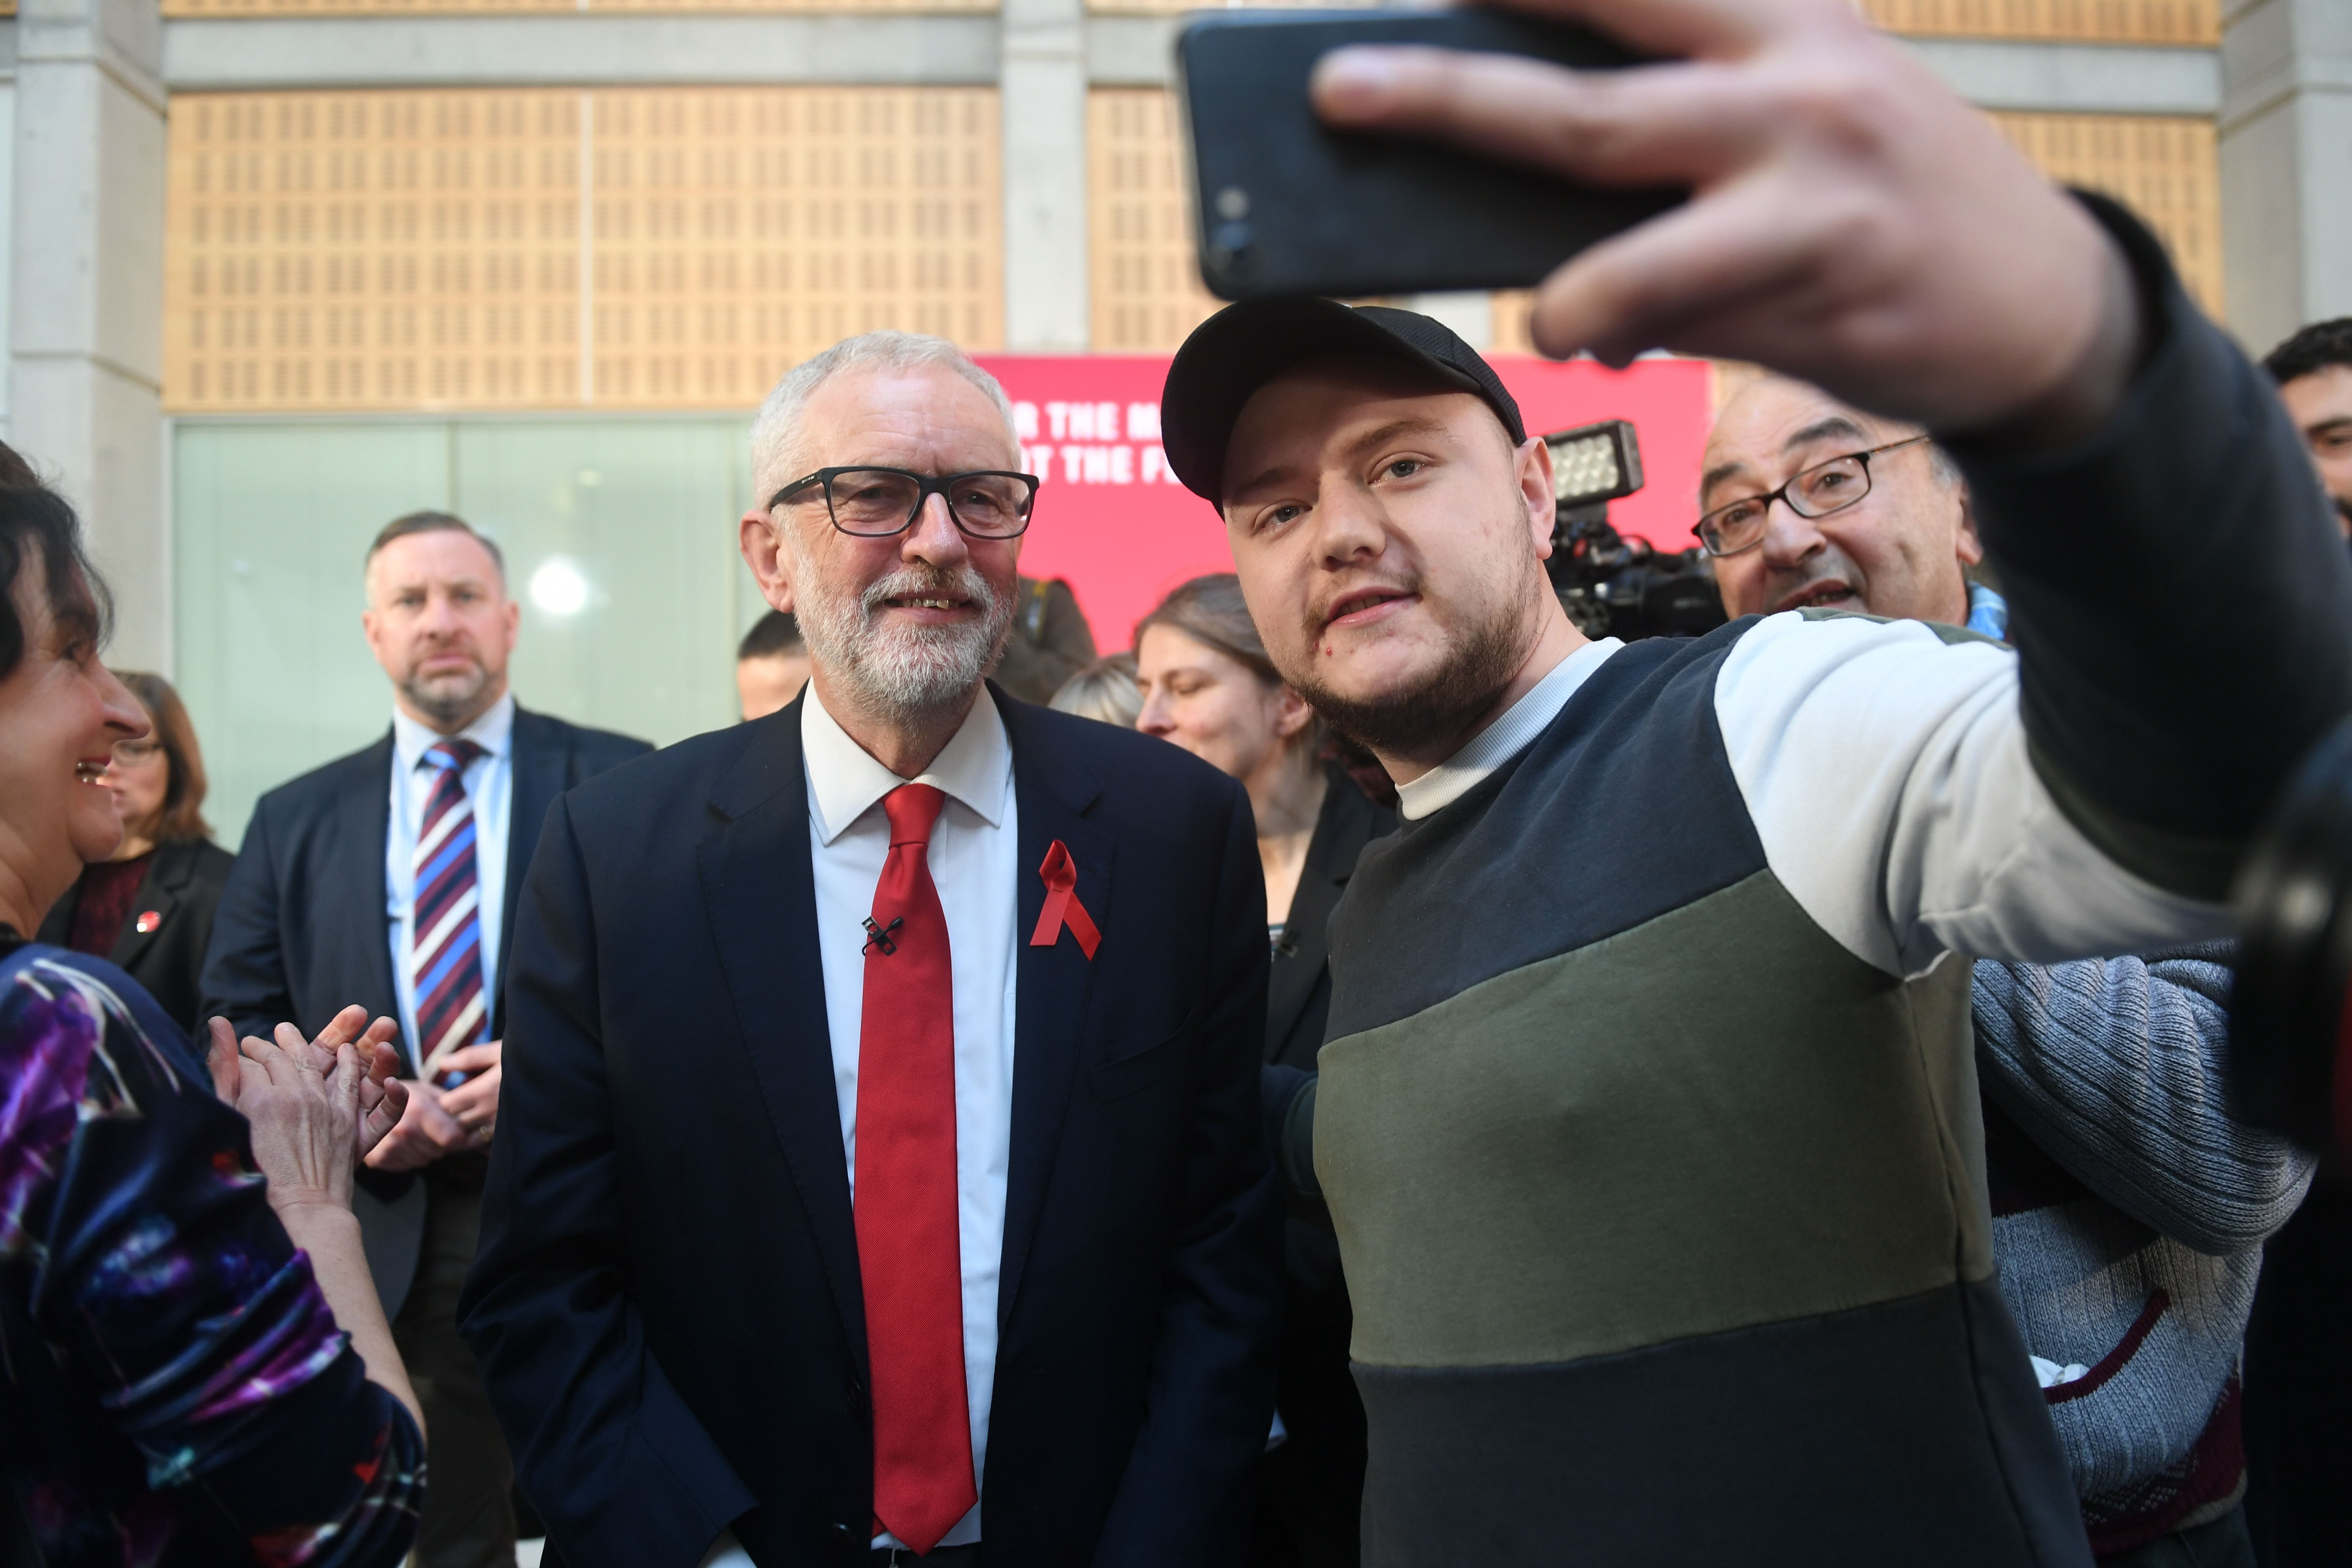 Labour leader Jeremy Corbyn takes a selfie with a supporter following a speech on international and foreign policy in York, while on the General Election campaign trail.